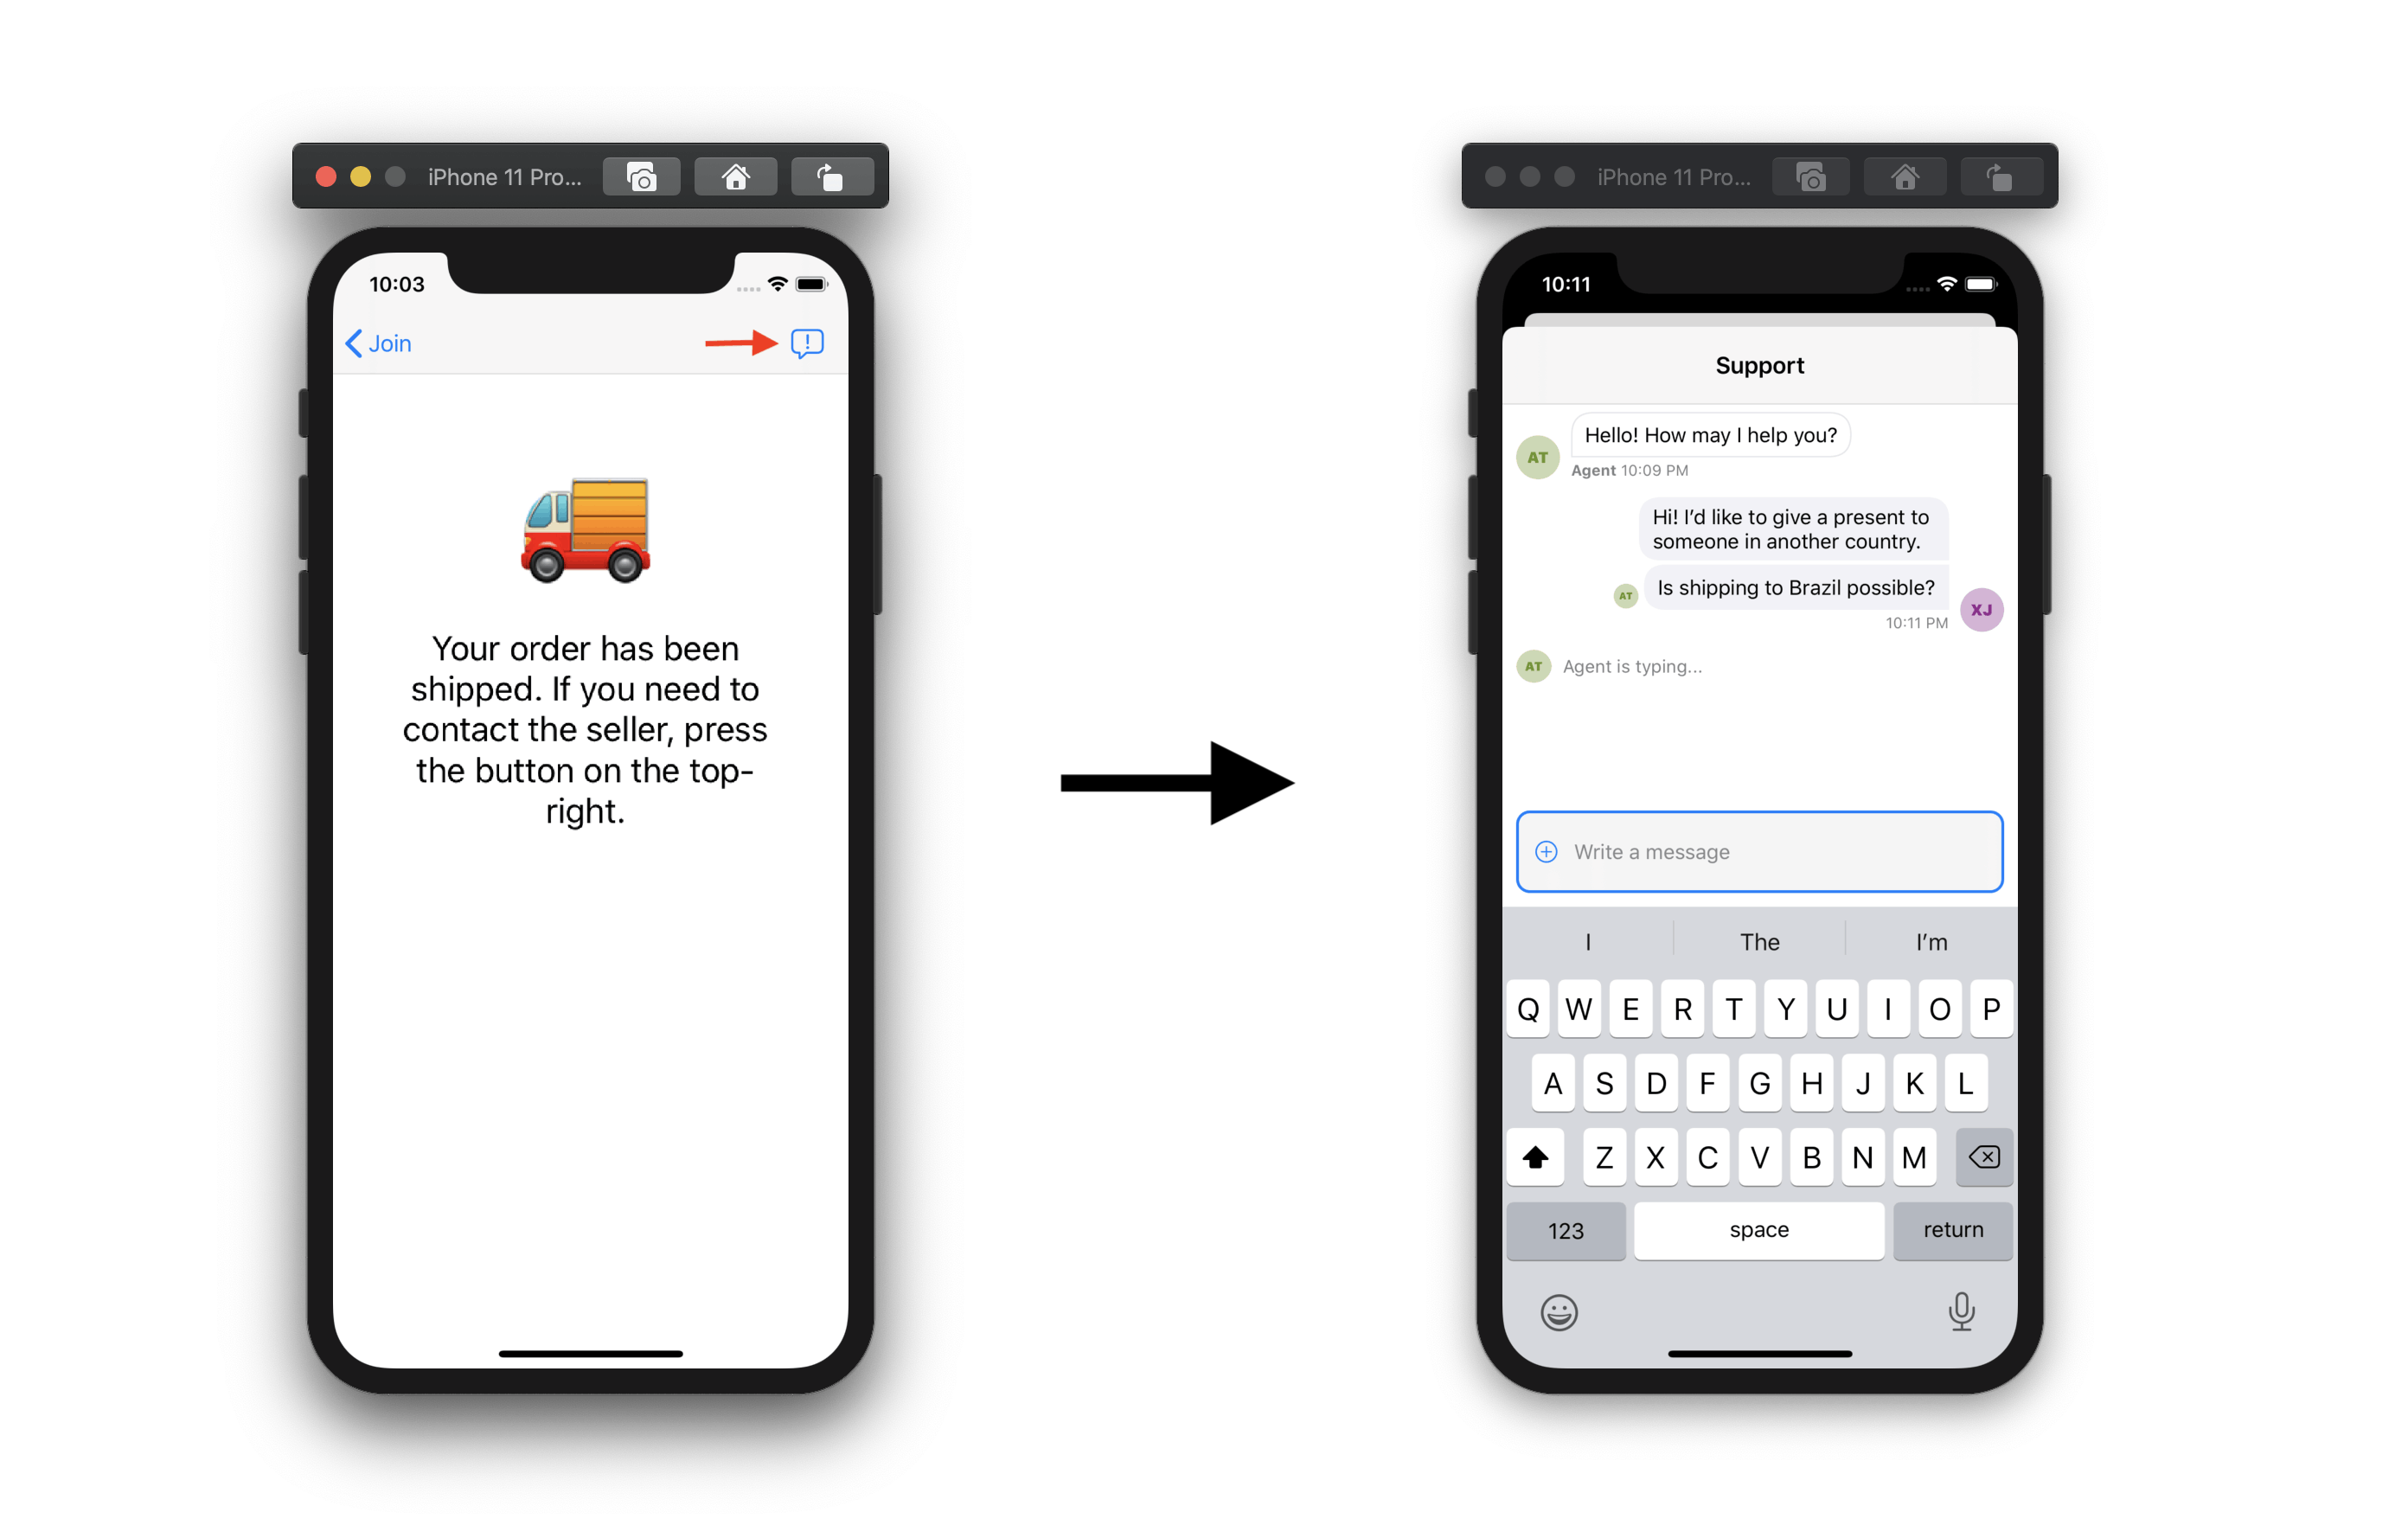 Screenshot shows an e-commerce iOS app screen with a chat button that leads to the chat screen, also pictured